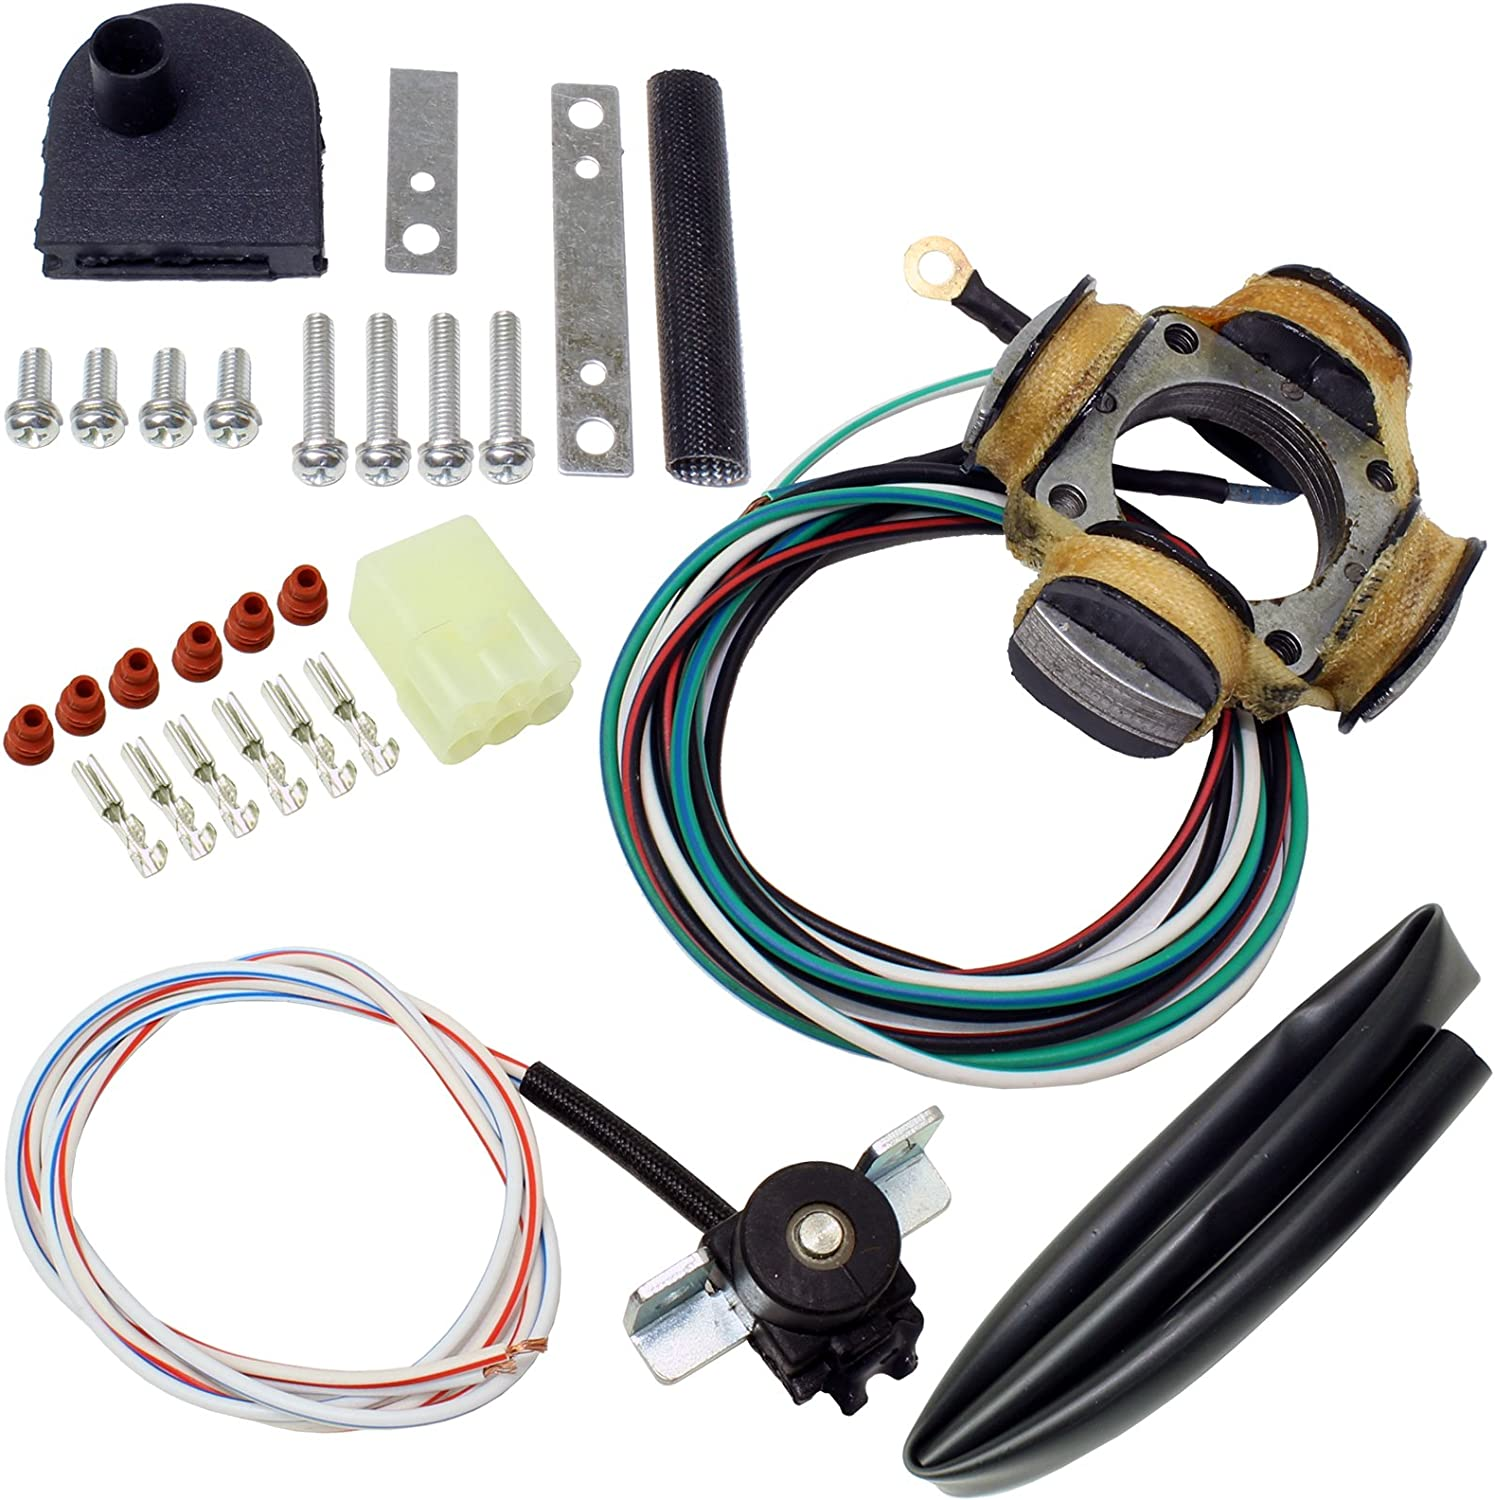 Caltric compatible with Stator Yamaha Product Yz125 Yz 2006 125 Special price for a limited time 2007 200